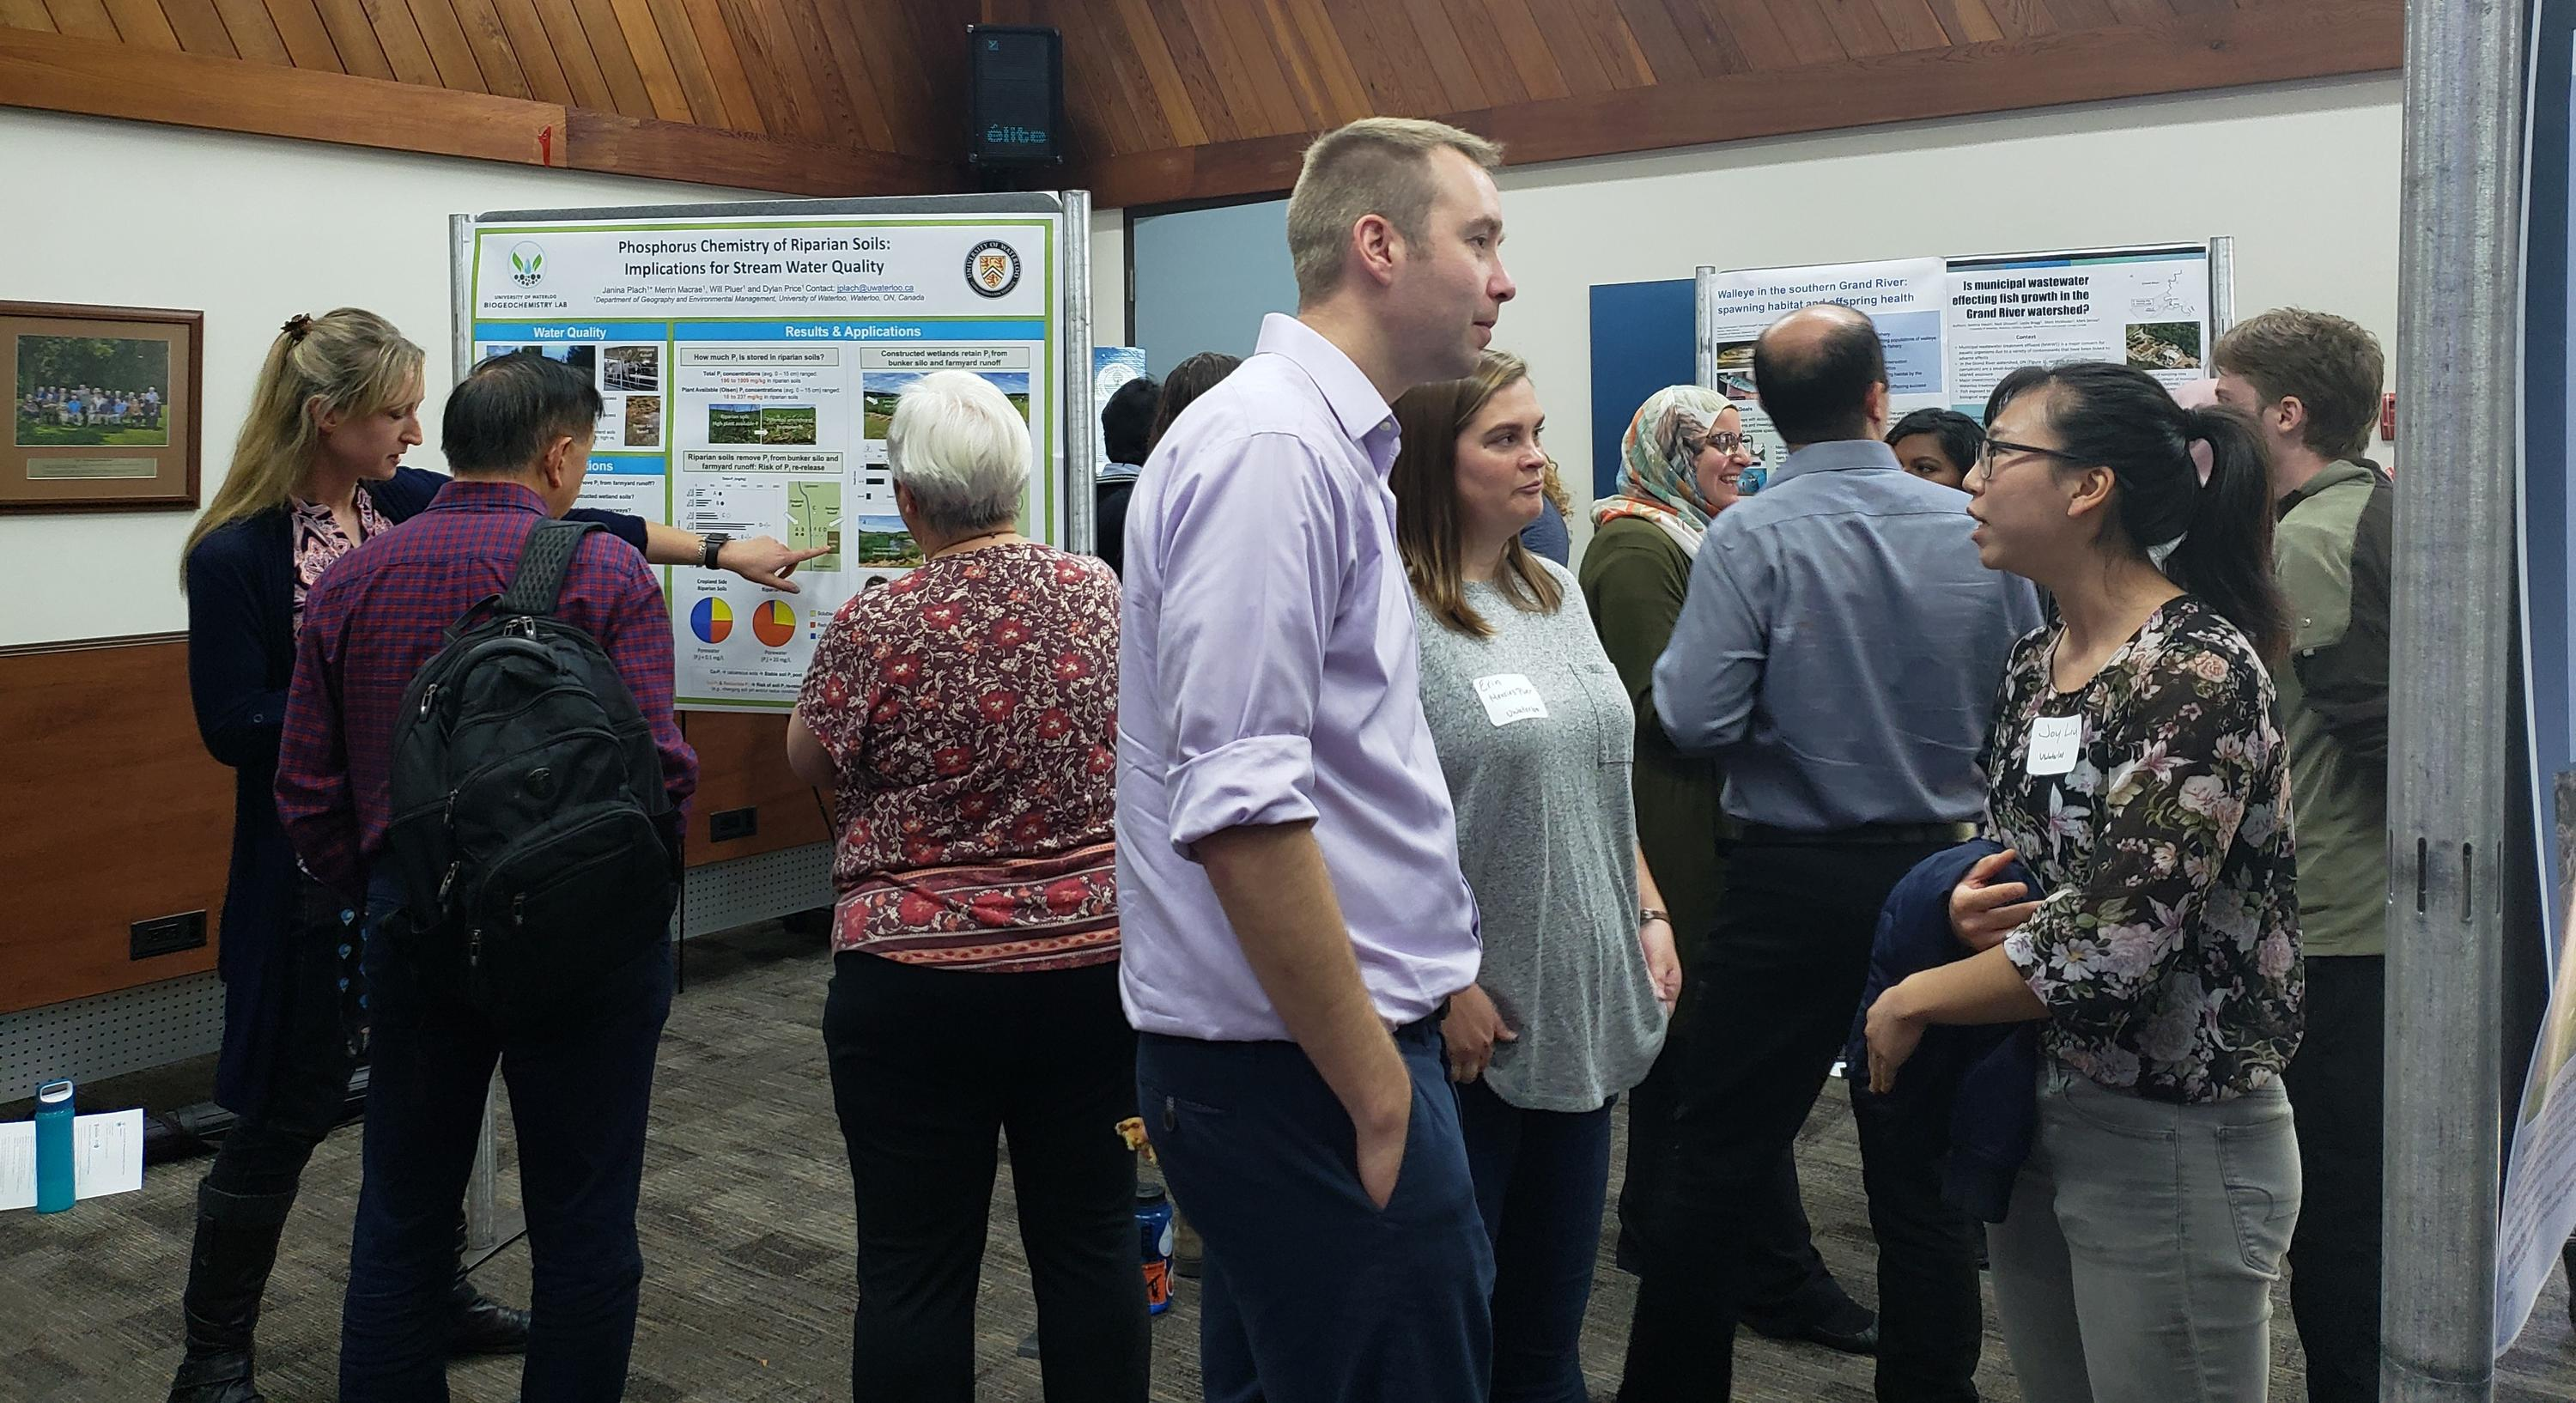 Poster session at UW Research Spotlight